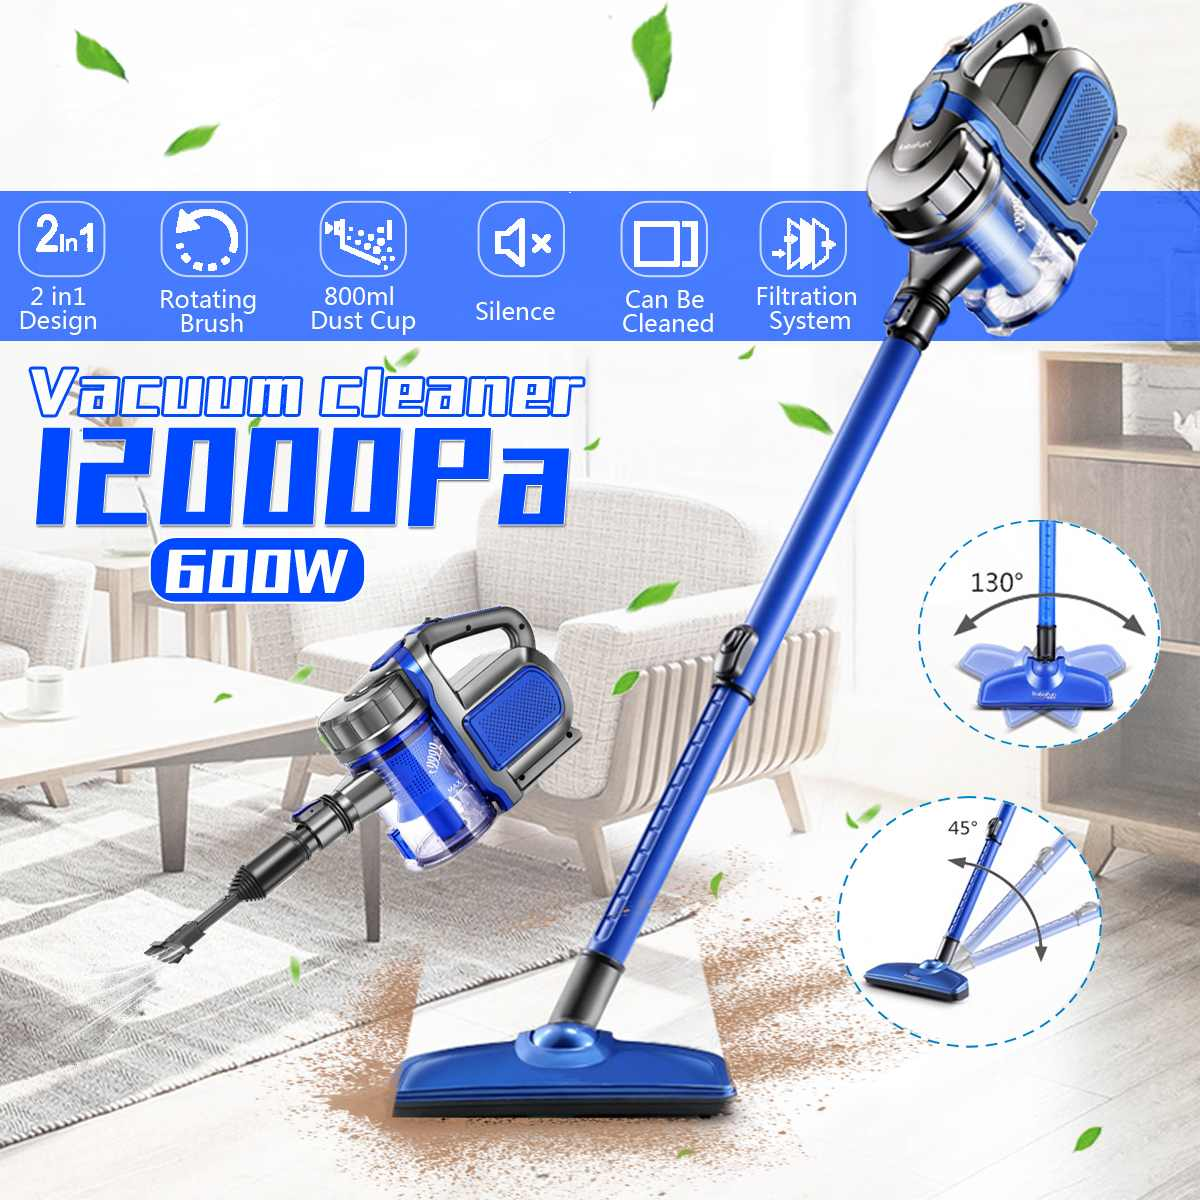 12000Pa Protable 2 In 1 Handheld Cordless Vacuum Cleaner Strong Suction Dust Collector Stick Aspirator Handheld Vacuum Cleaner